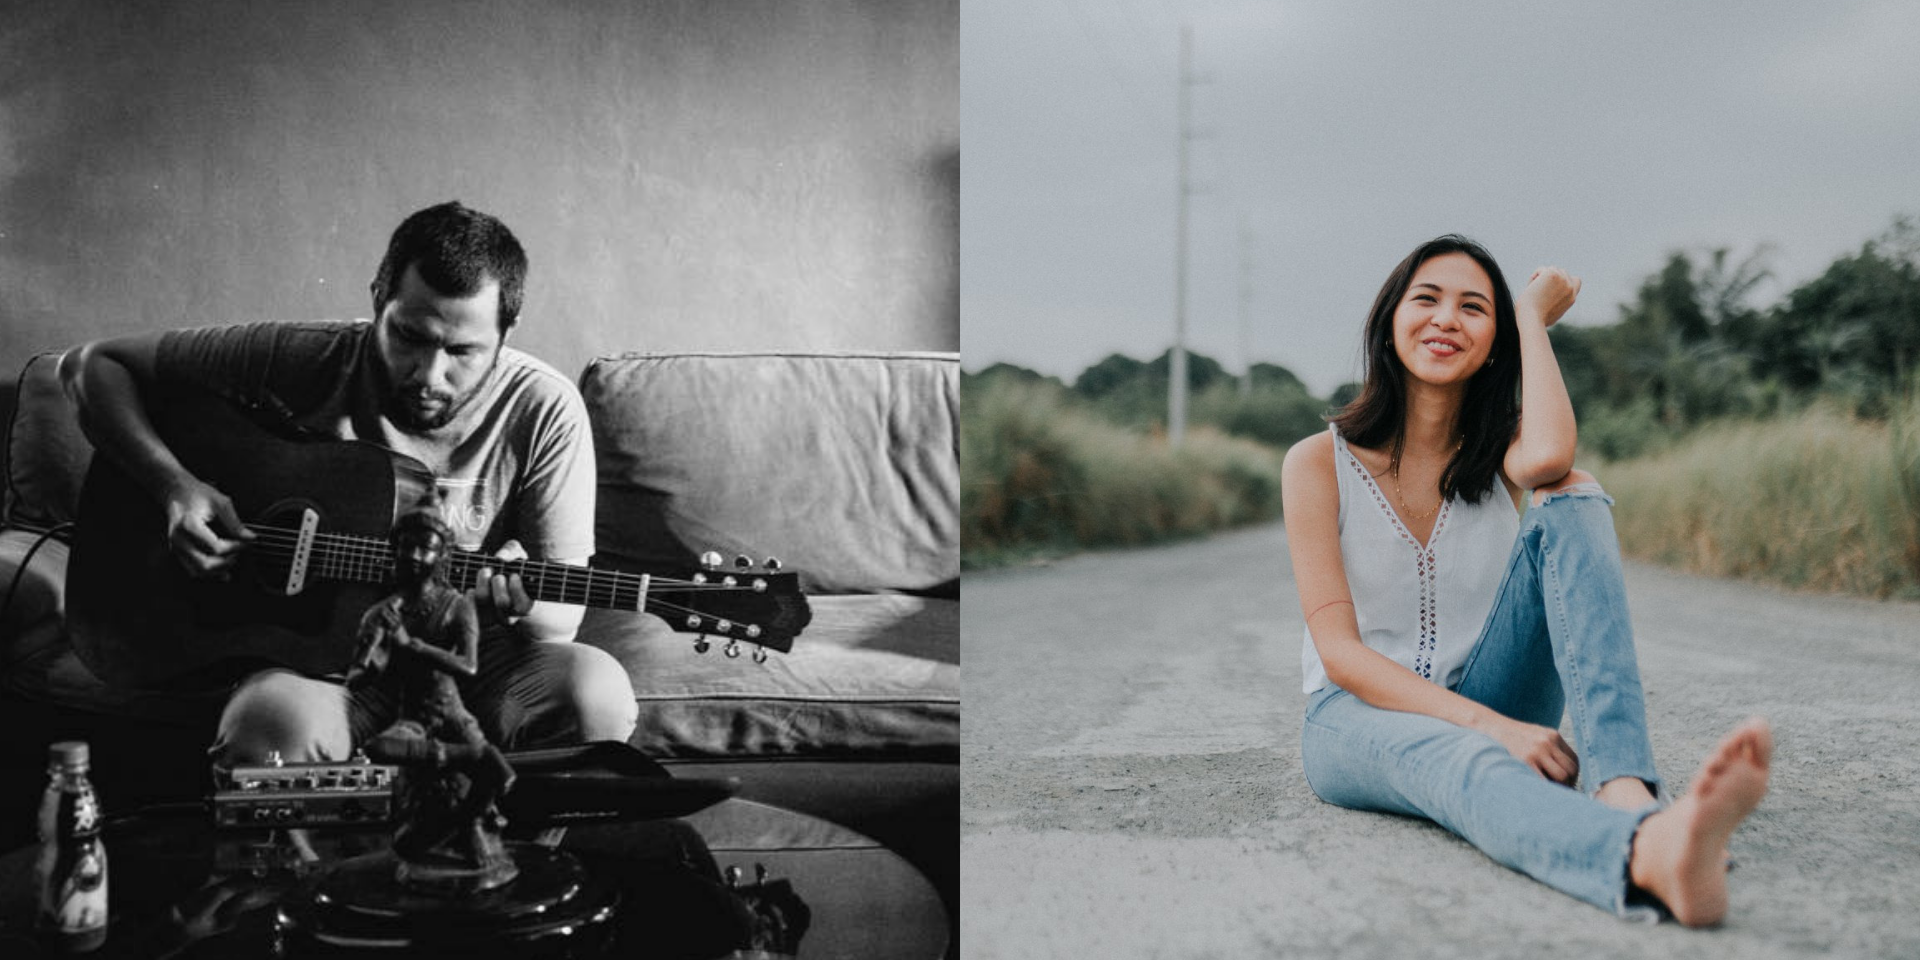 It's the Right Time for another Johnoy Danao and Clara Benin collaboration